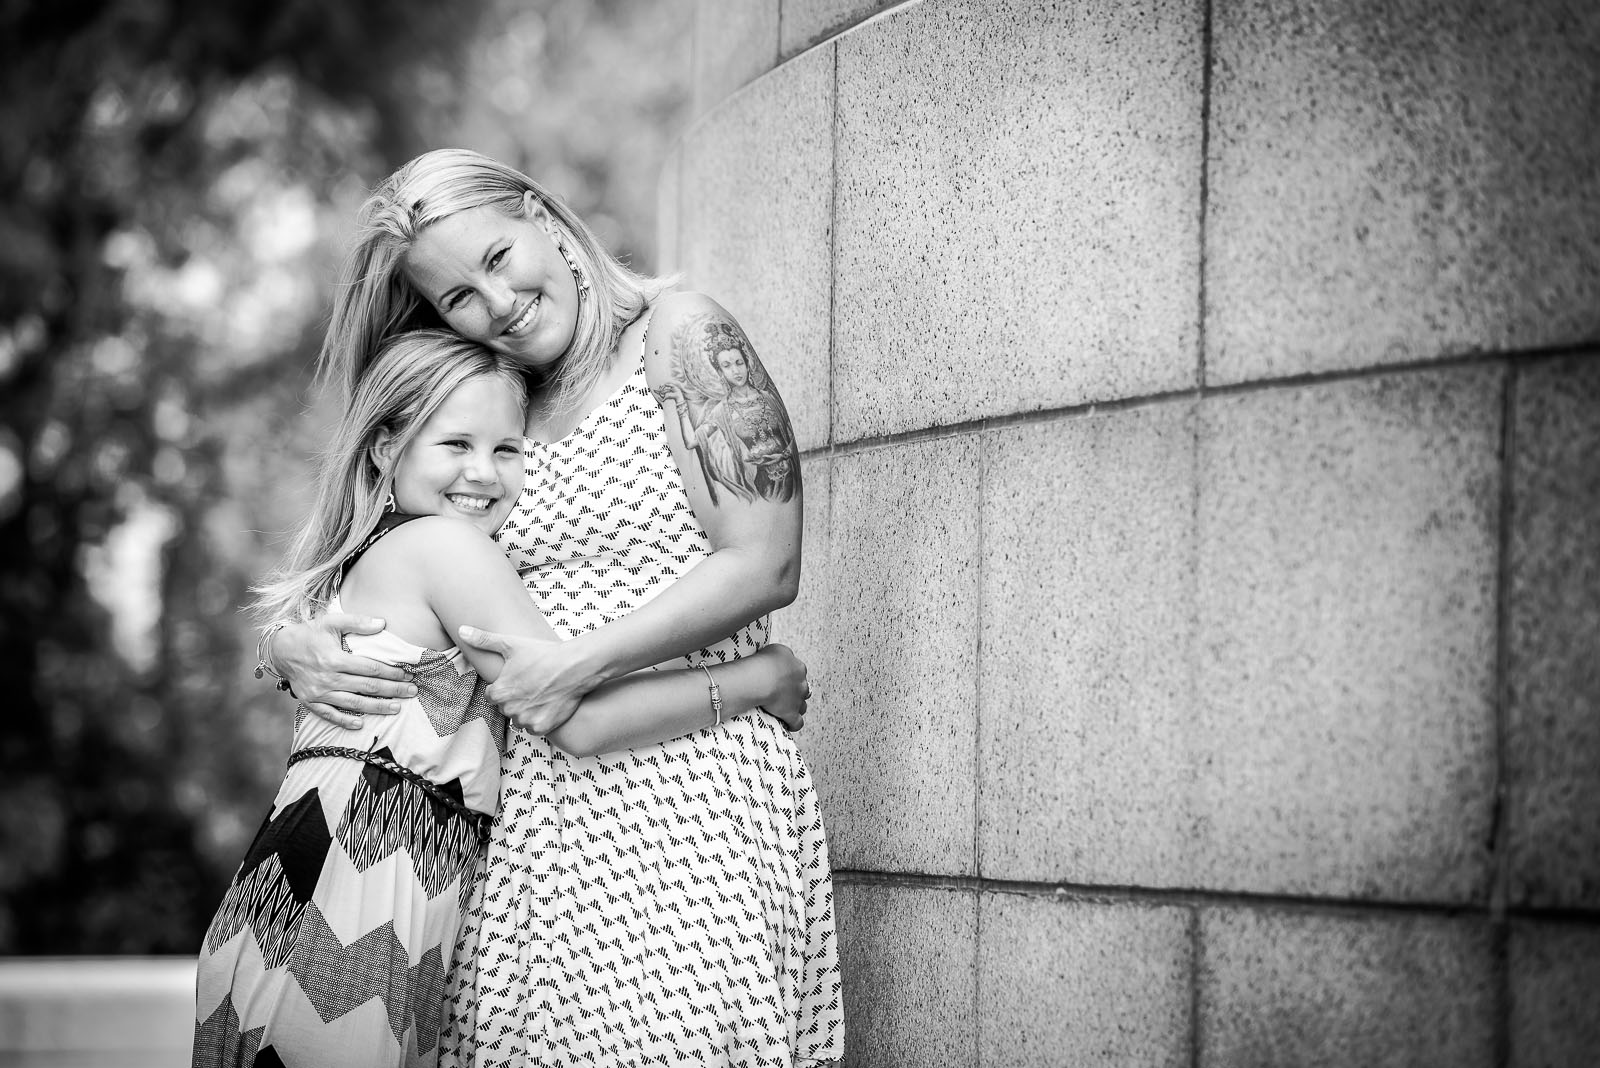 eric_and_christy_photographers_blog_family_kerriaaron-17